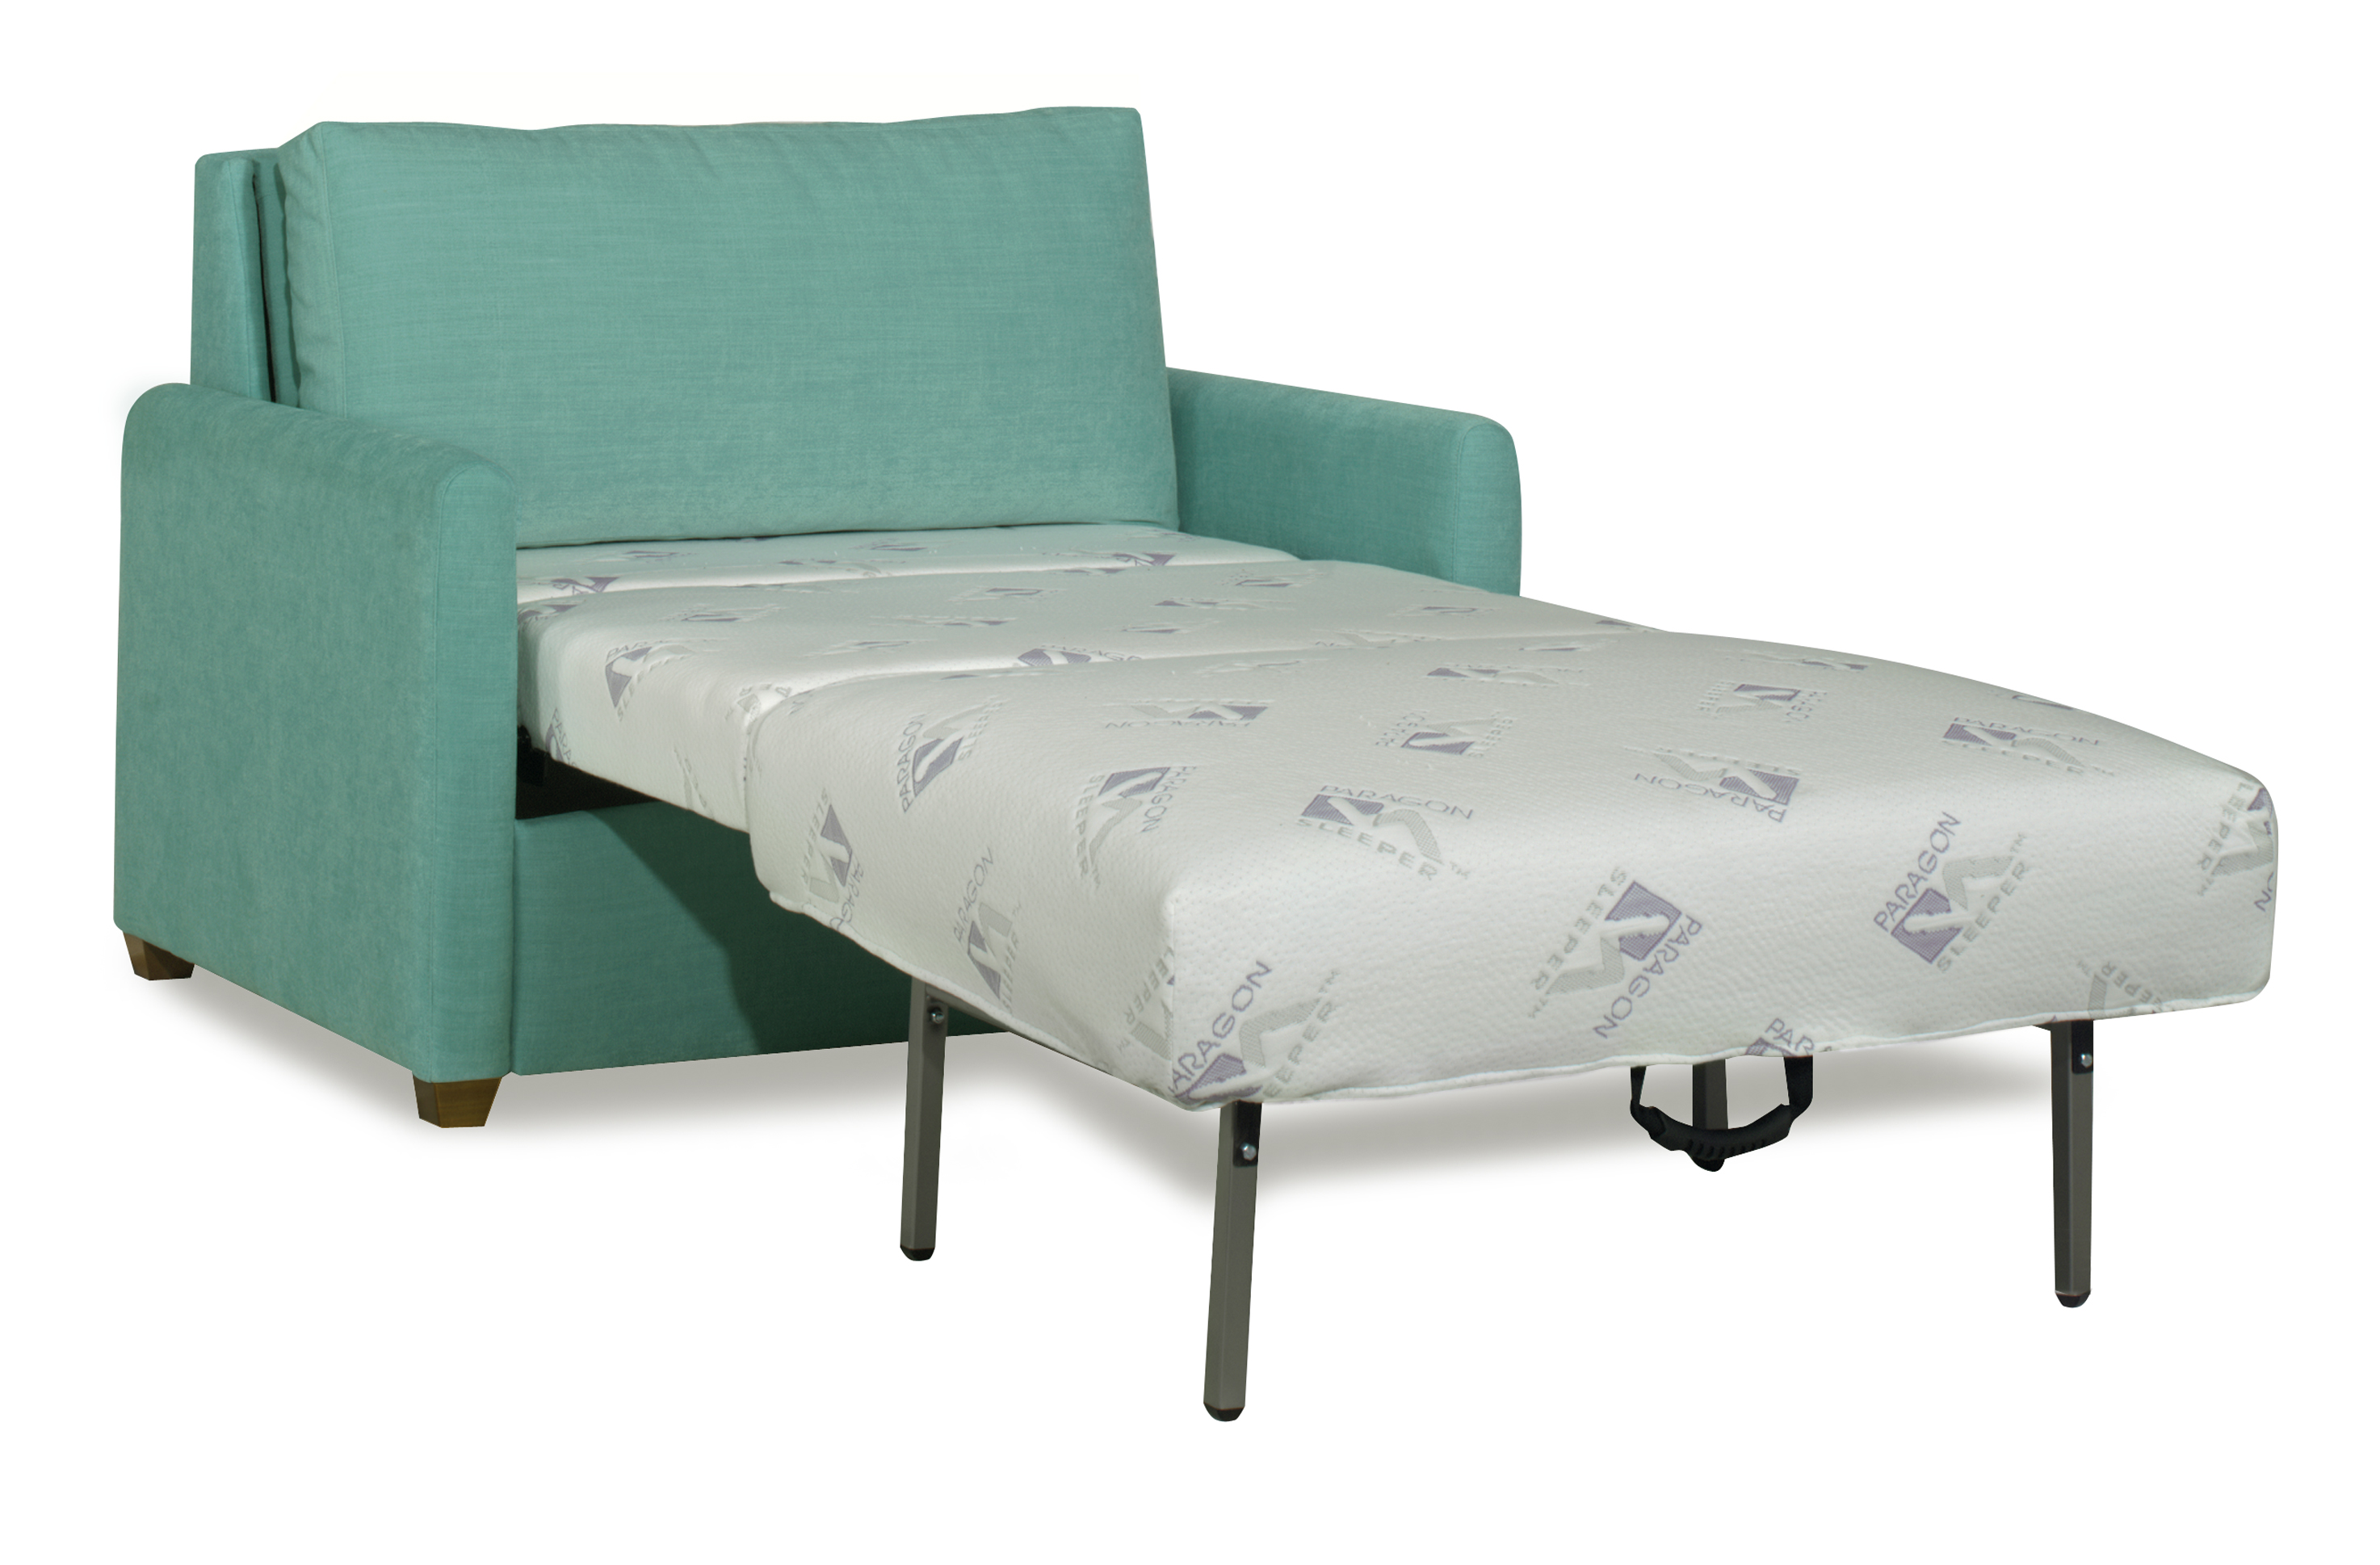 chair bed sleeper turquoise twin sofa sleeper chair